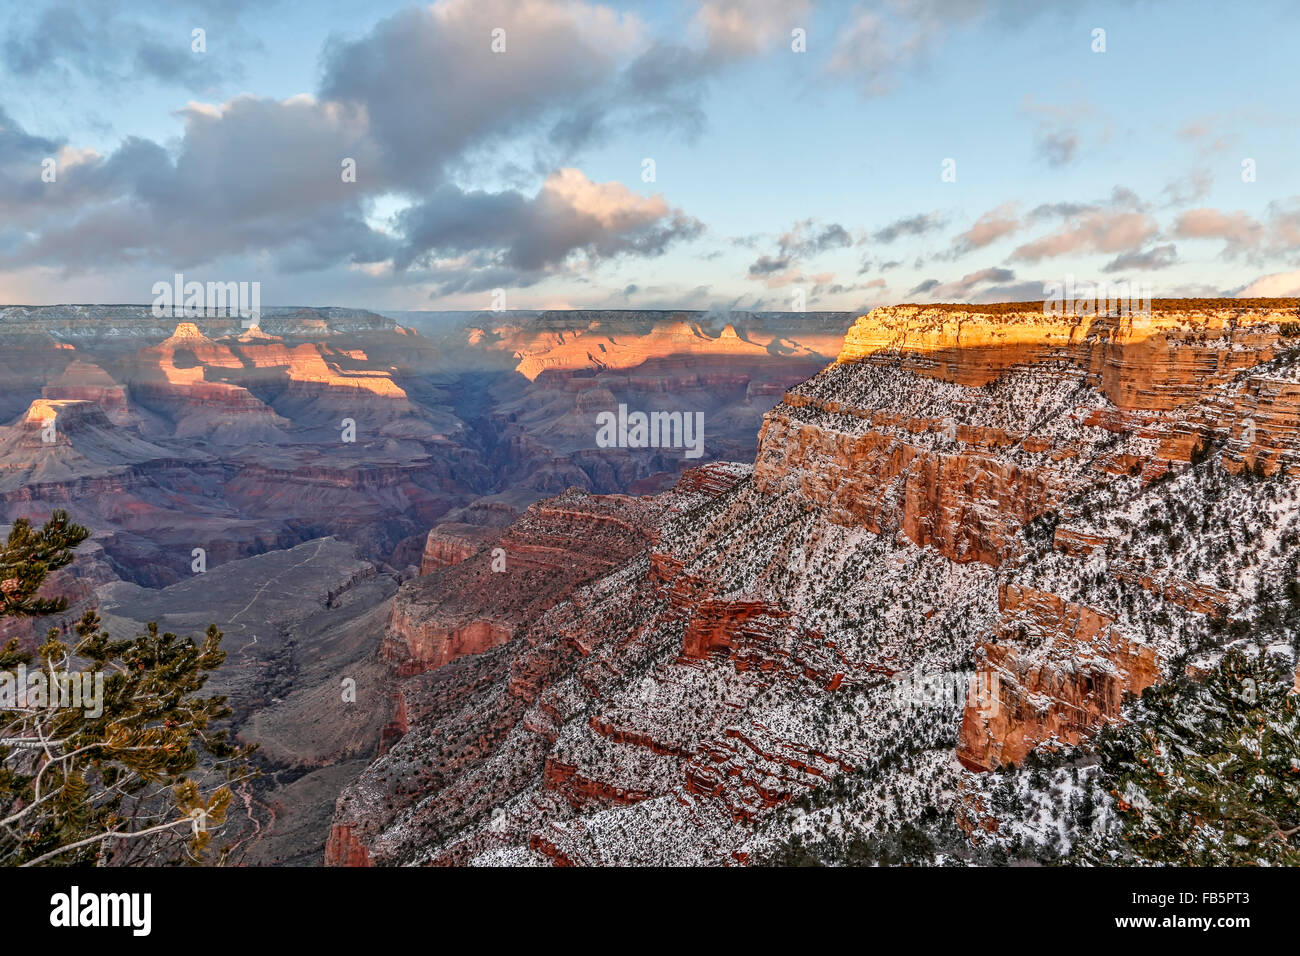 Les falaises et canyons, de Rim Trail, au Village, le Parc National du Grand Canyon, Arizona USA Photo Stock